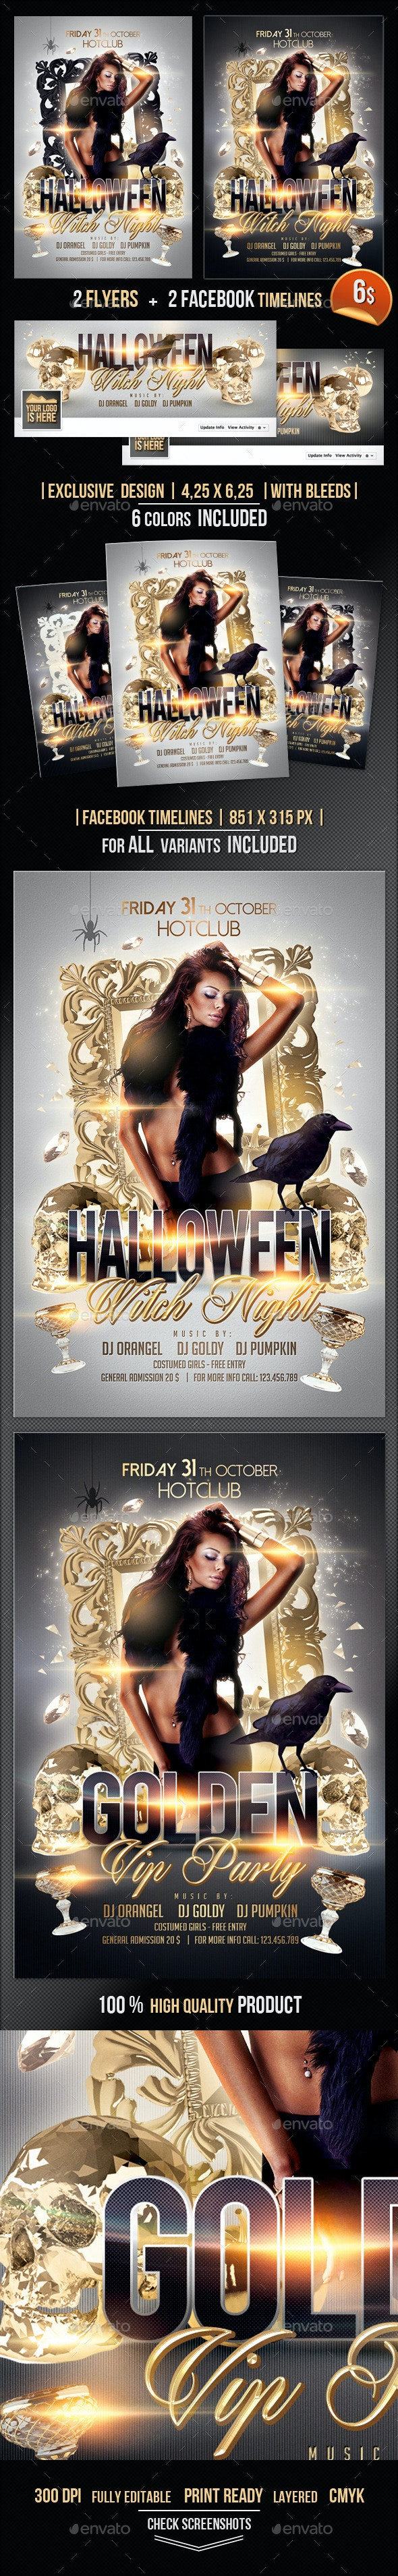 Halloween Witch Night Flyer + Fb Timeline - Clubs & Parties Events